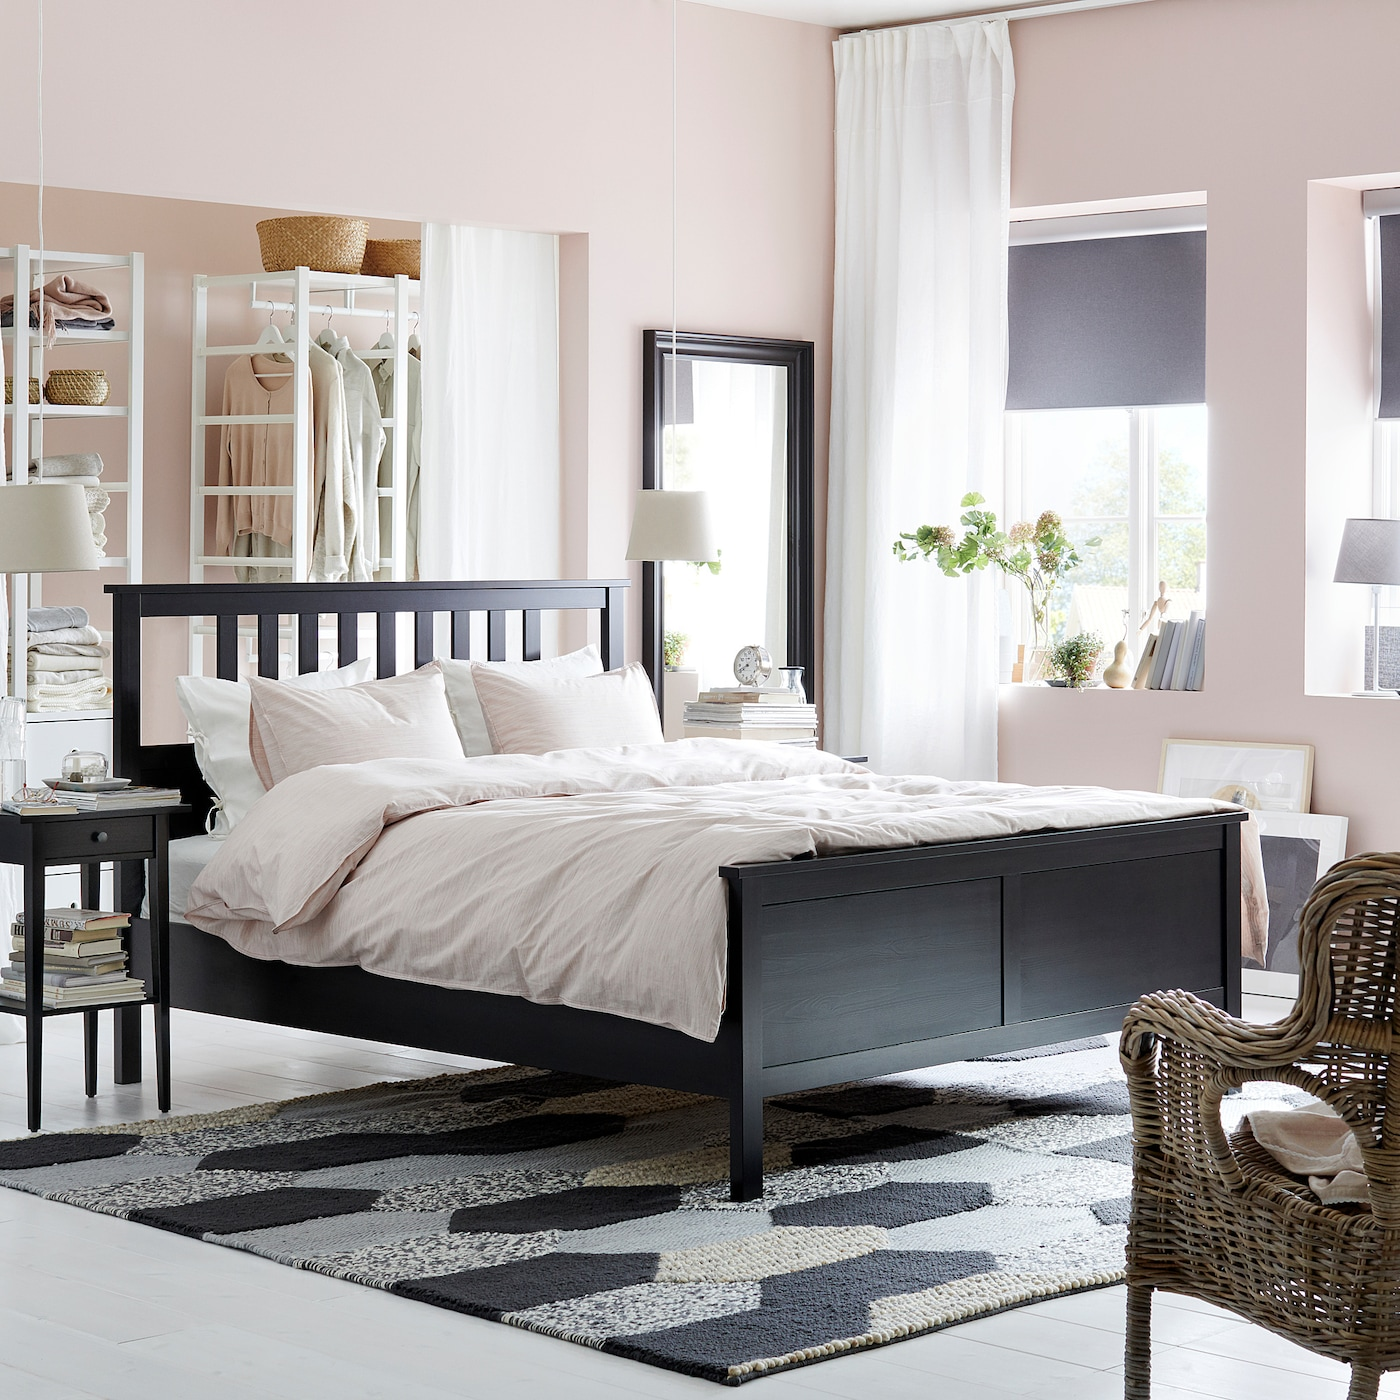 IKEA HEMNES bed frame Adjustable bed sides allow you to use mattresses of different thicknesses.